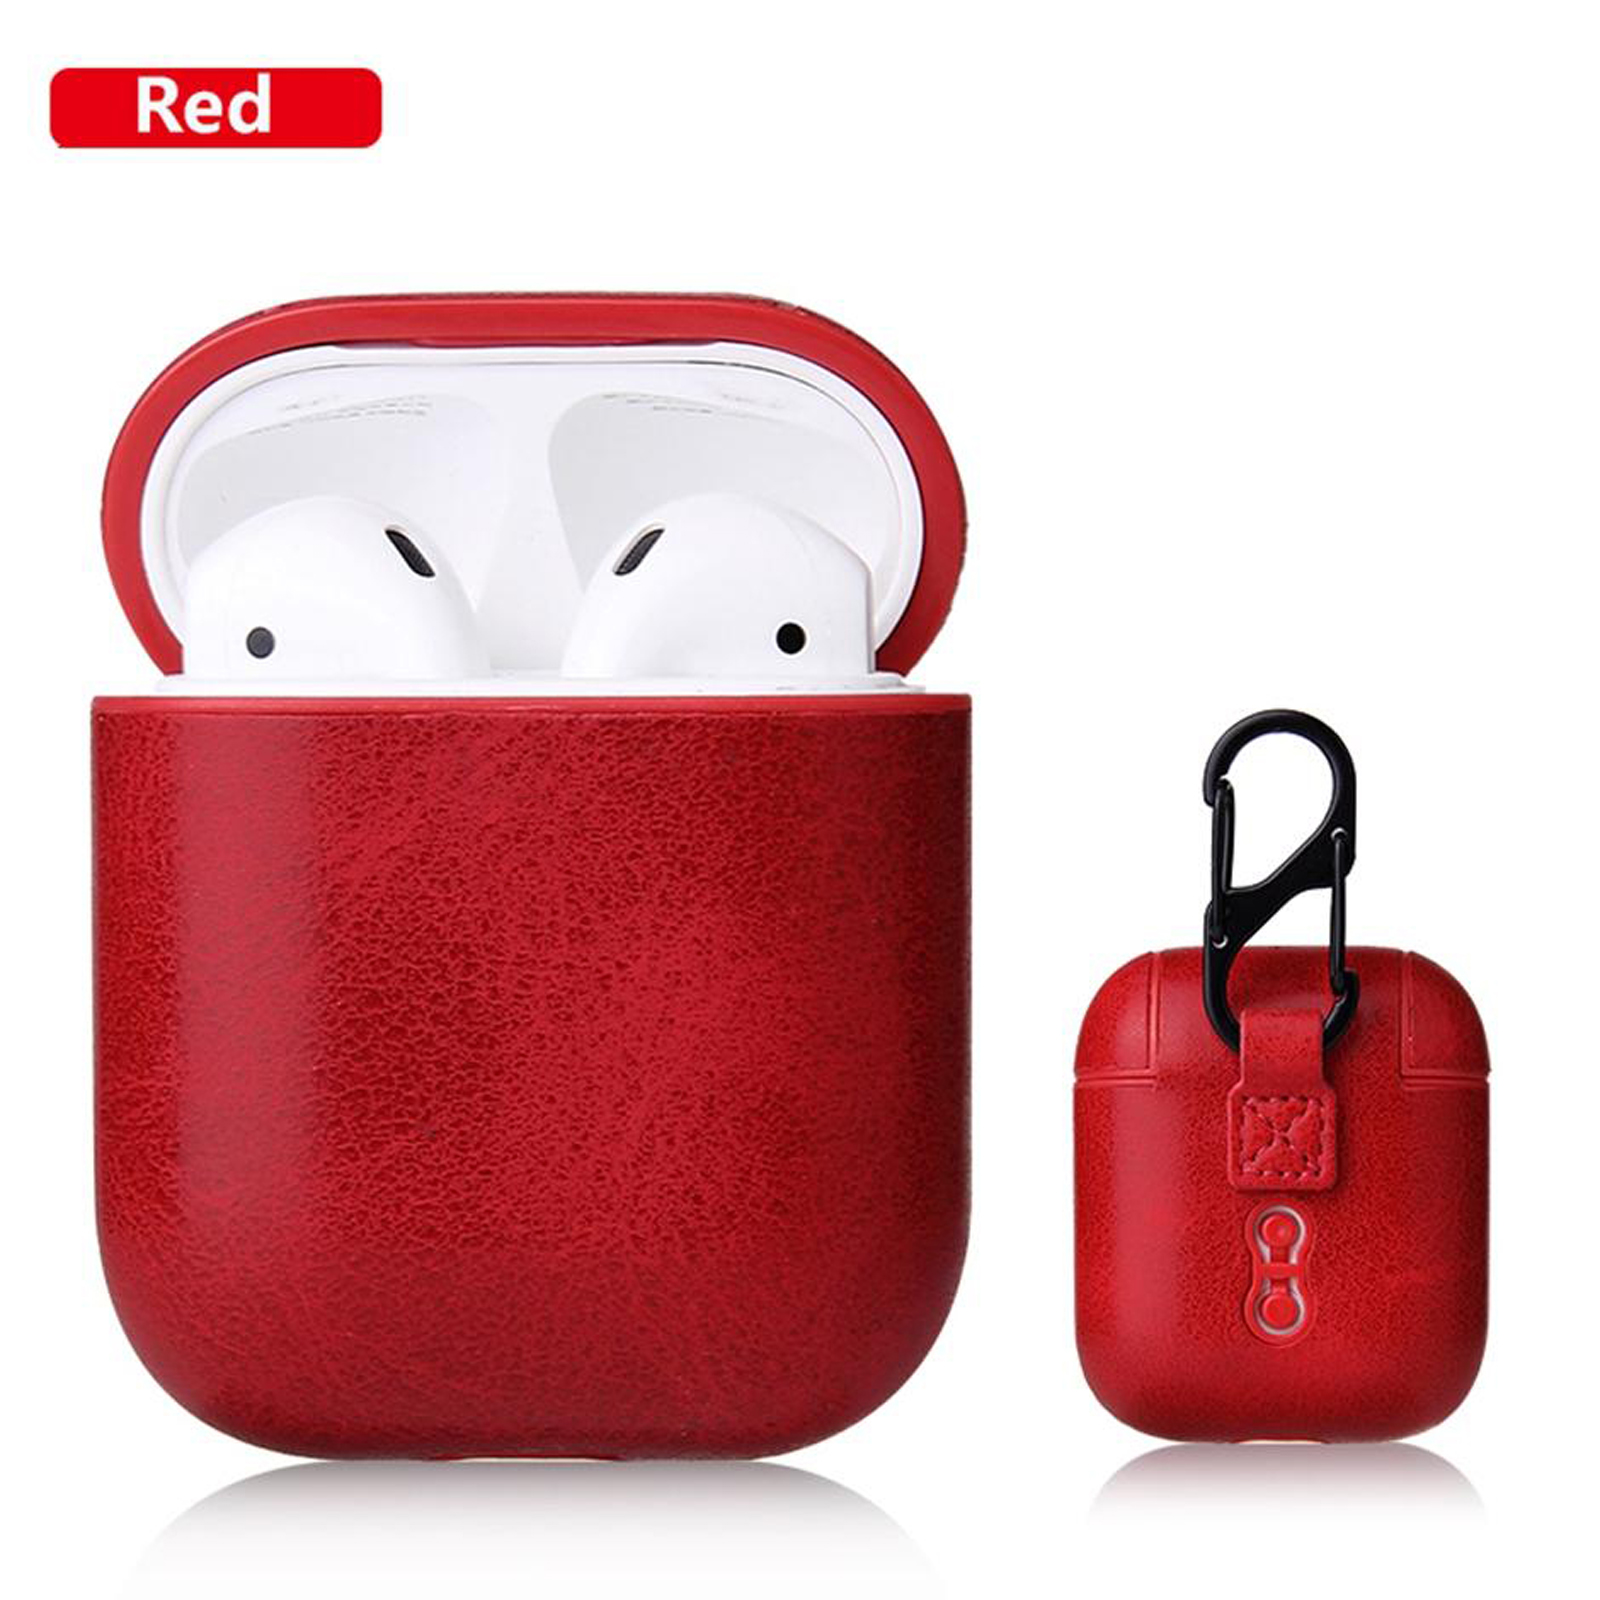 New-Leather-Soft-Skin-Case-For-Apple-Airpods-1-2-1st-2nd-Gen-Earphones-PU-Cover thumbnail 58